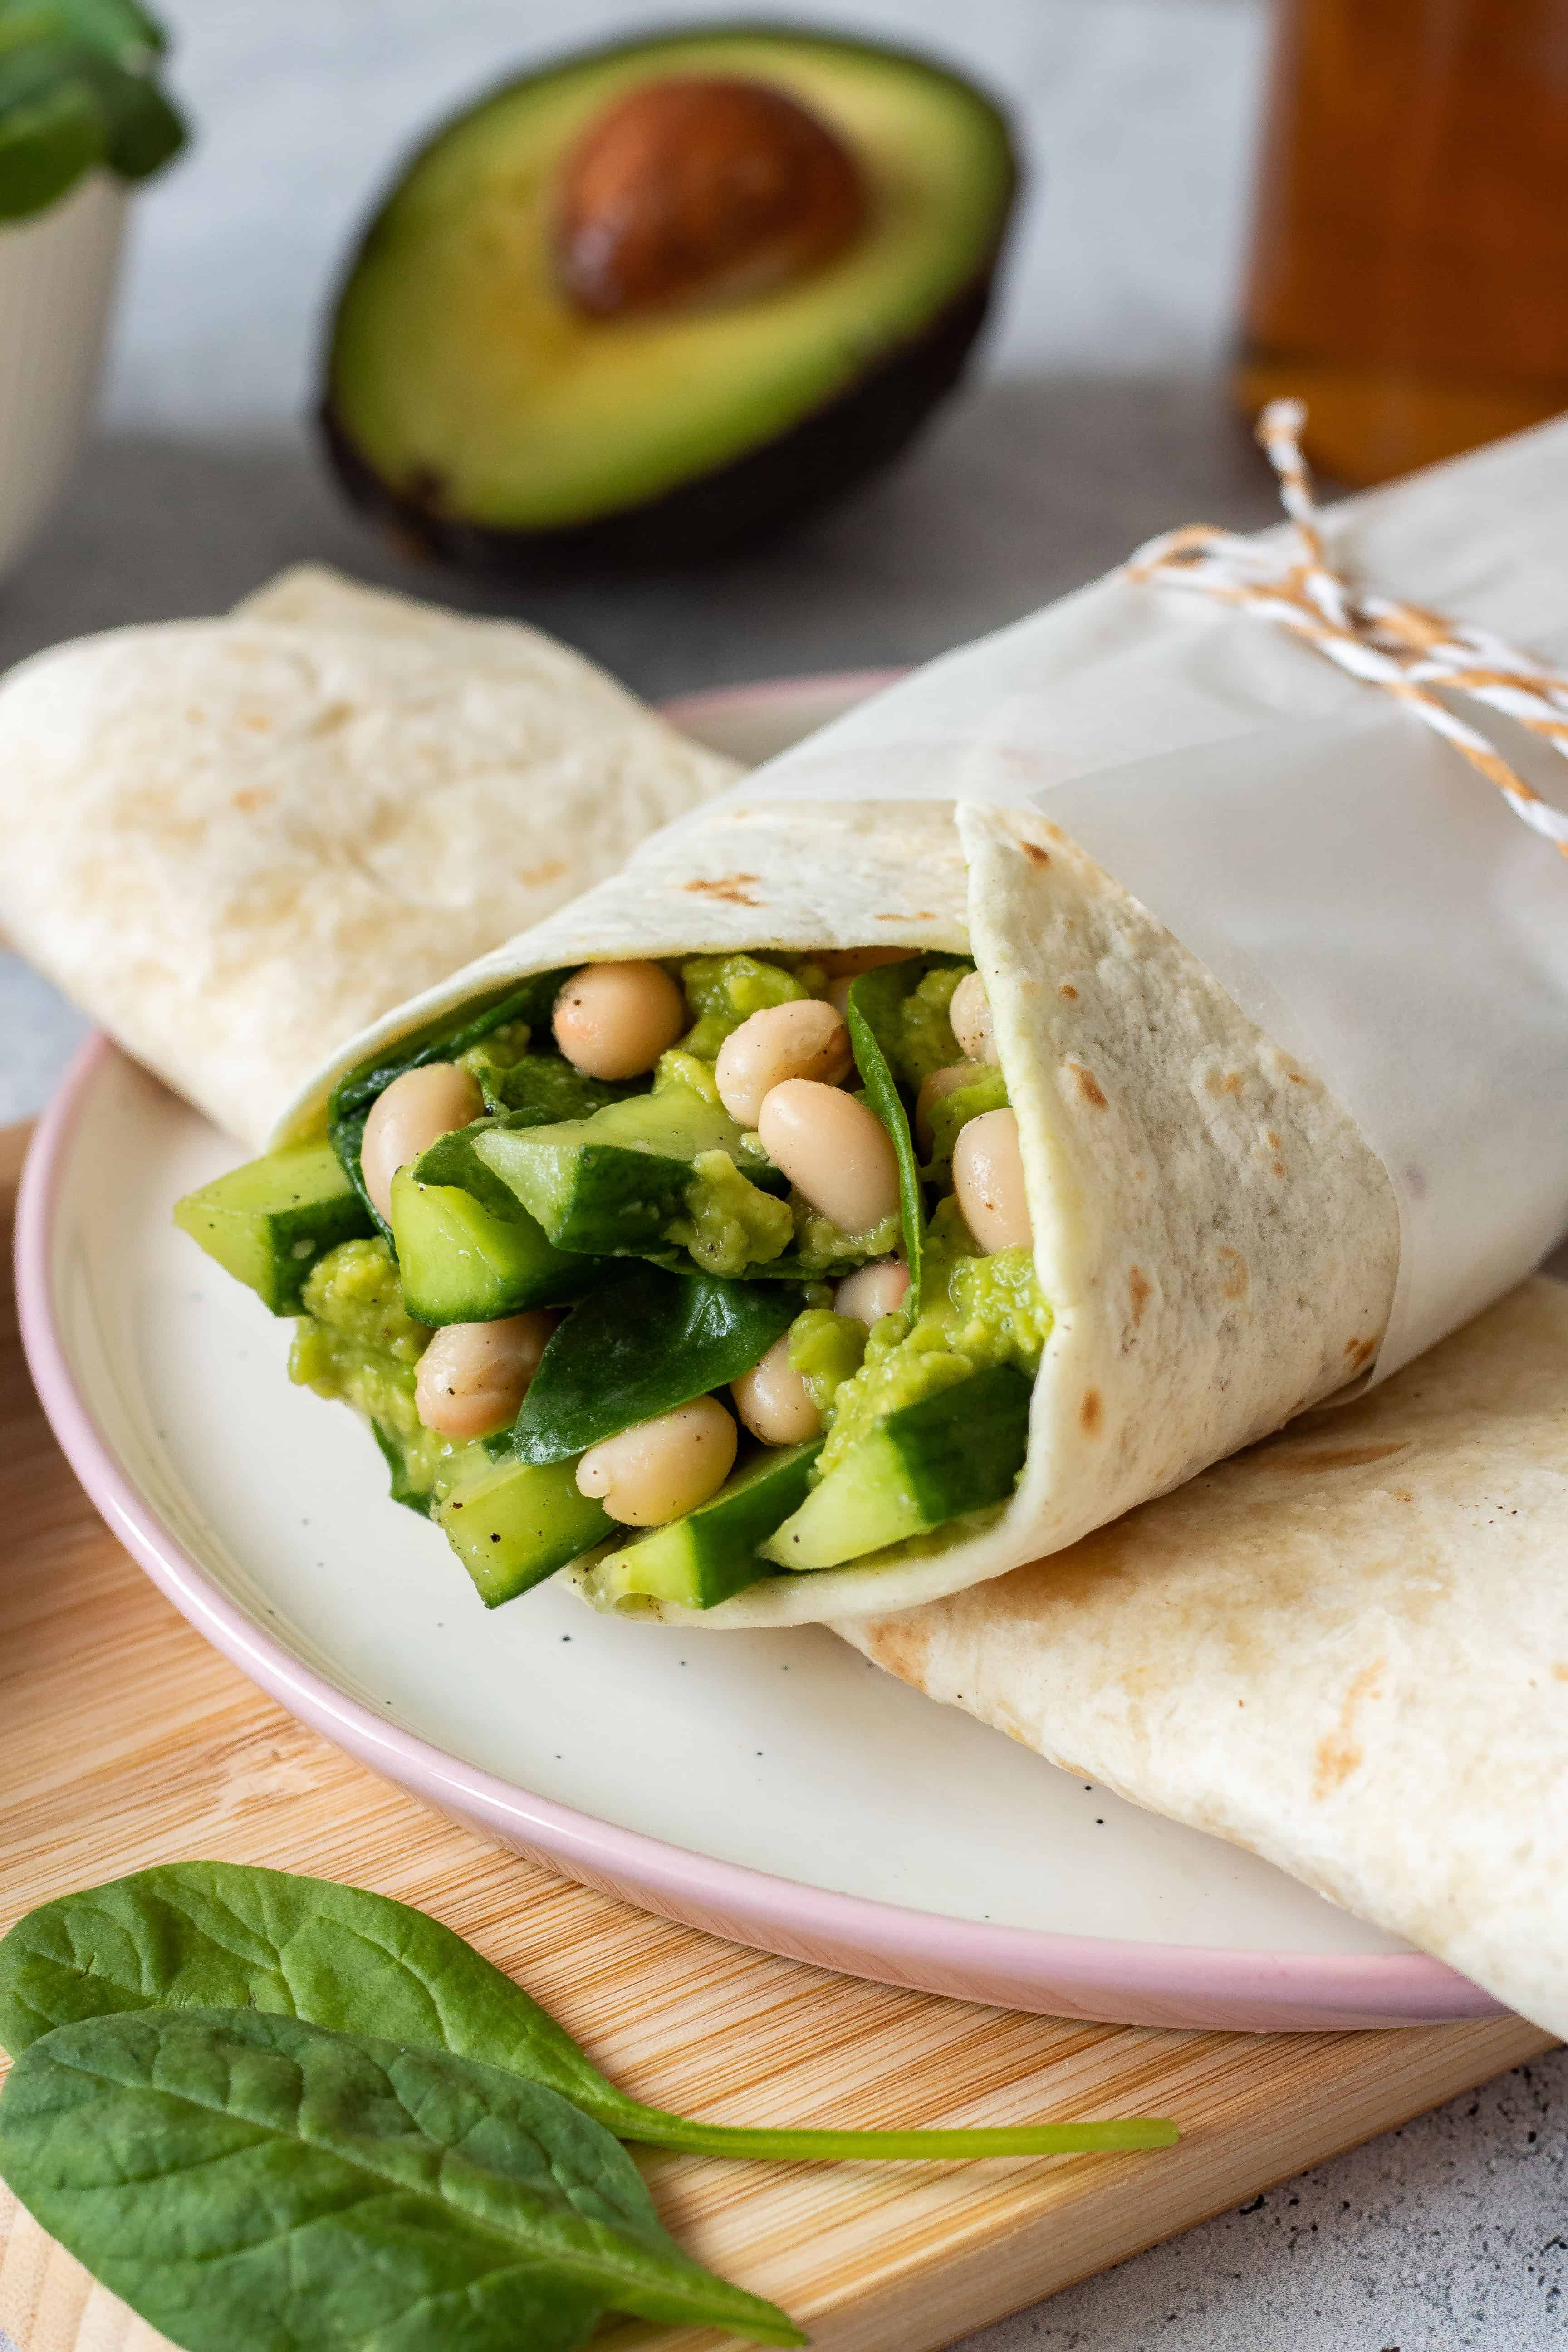 Avocado White Bean Wrap - made with spinach and cucumber. A super green, filling, protein-rich wrap that makes a perfect lunch to take with you. You can make it part of your weight loss diet as well. | The Green Loot #vegan #veganrecipes #dairyfree #healthyeating